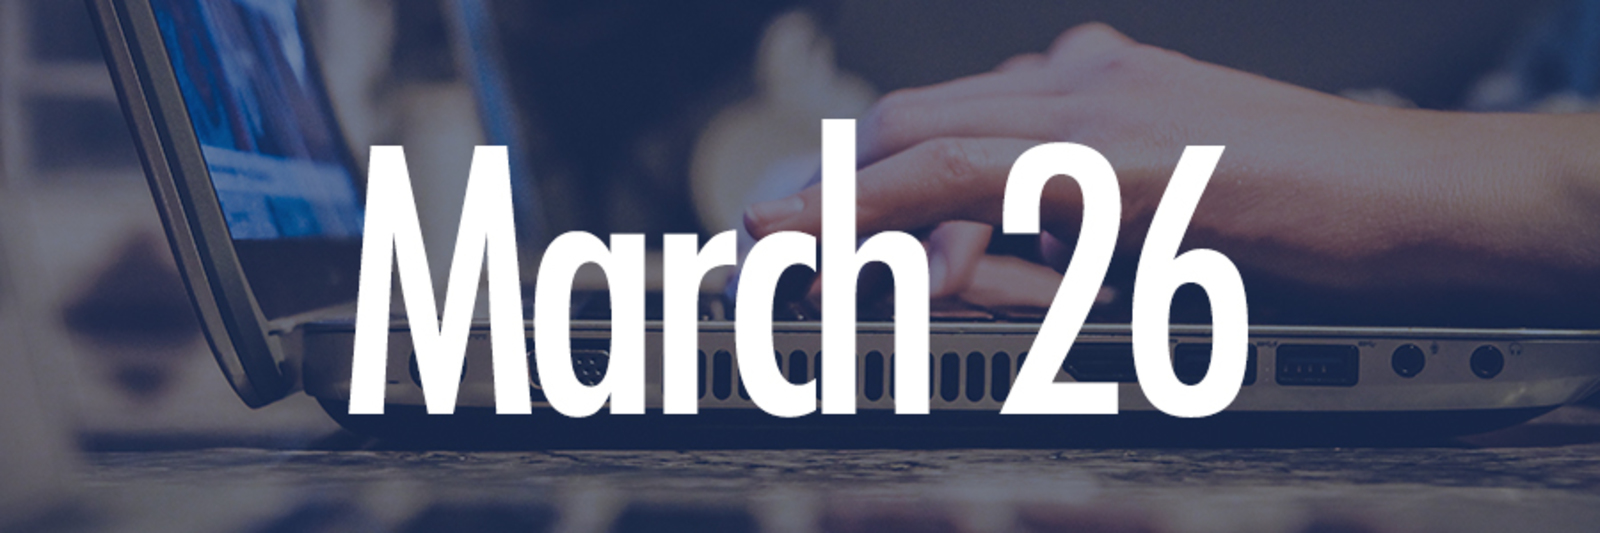 Normal2x march 26 events sara kalke template   navy